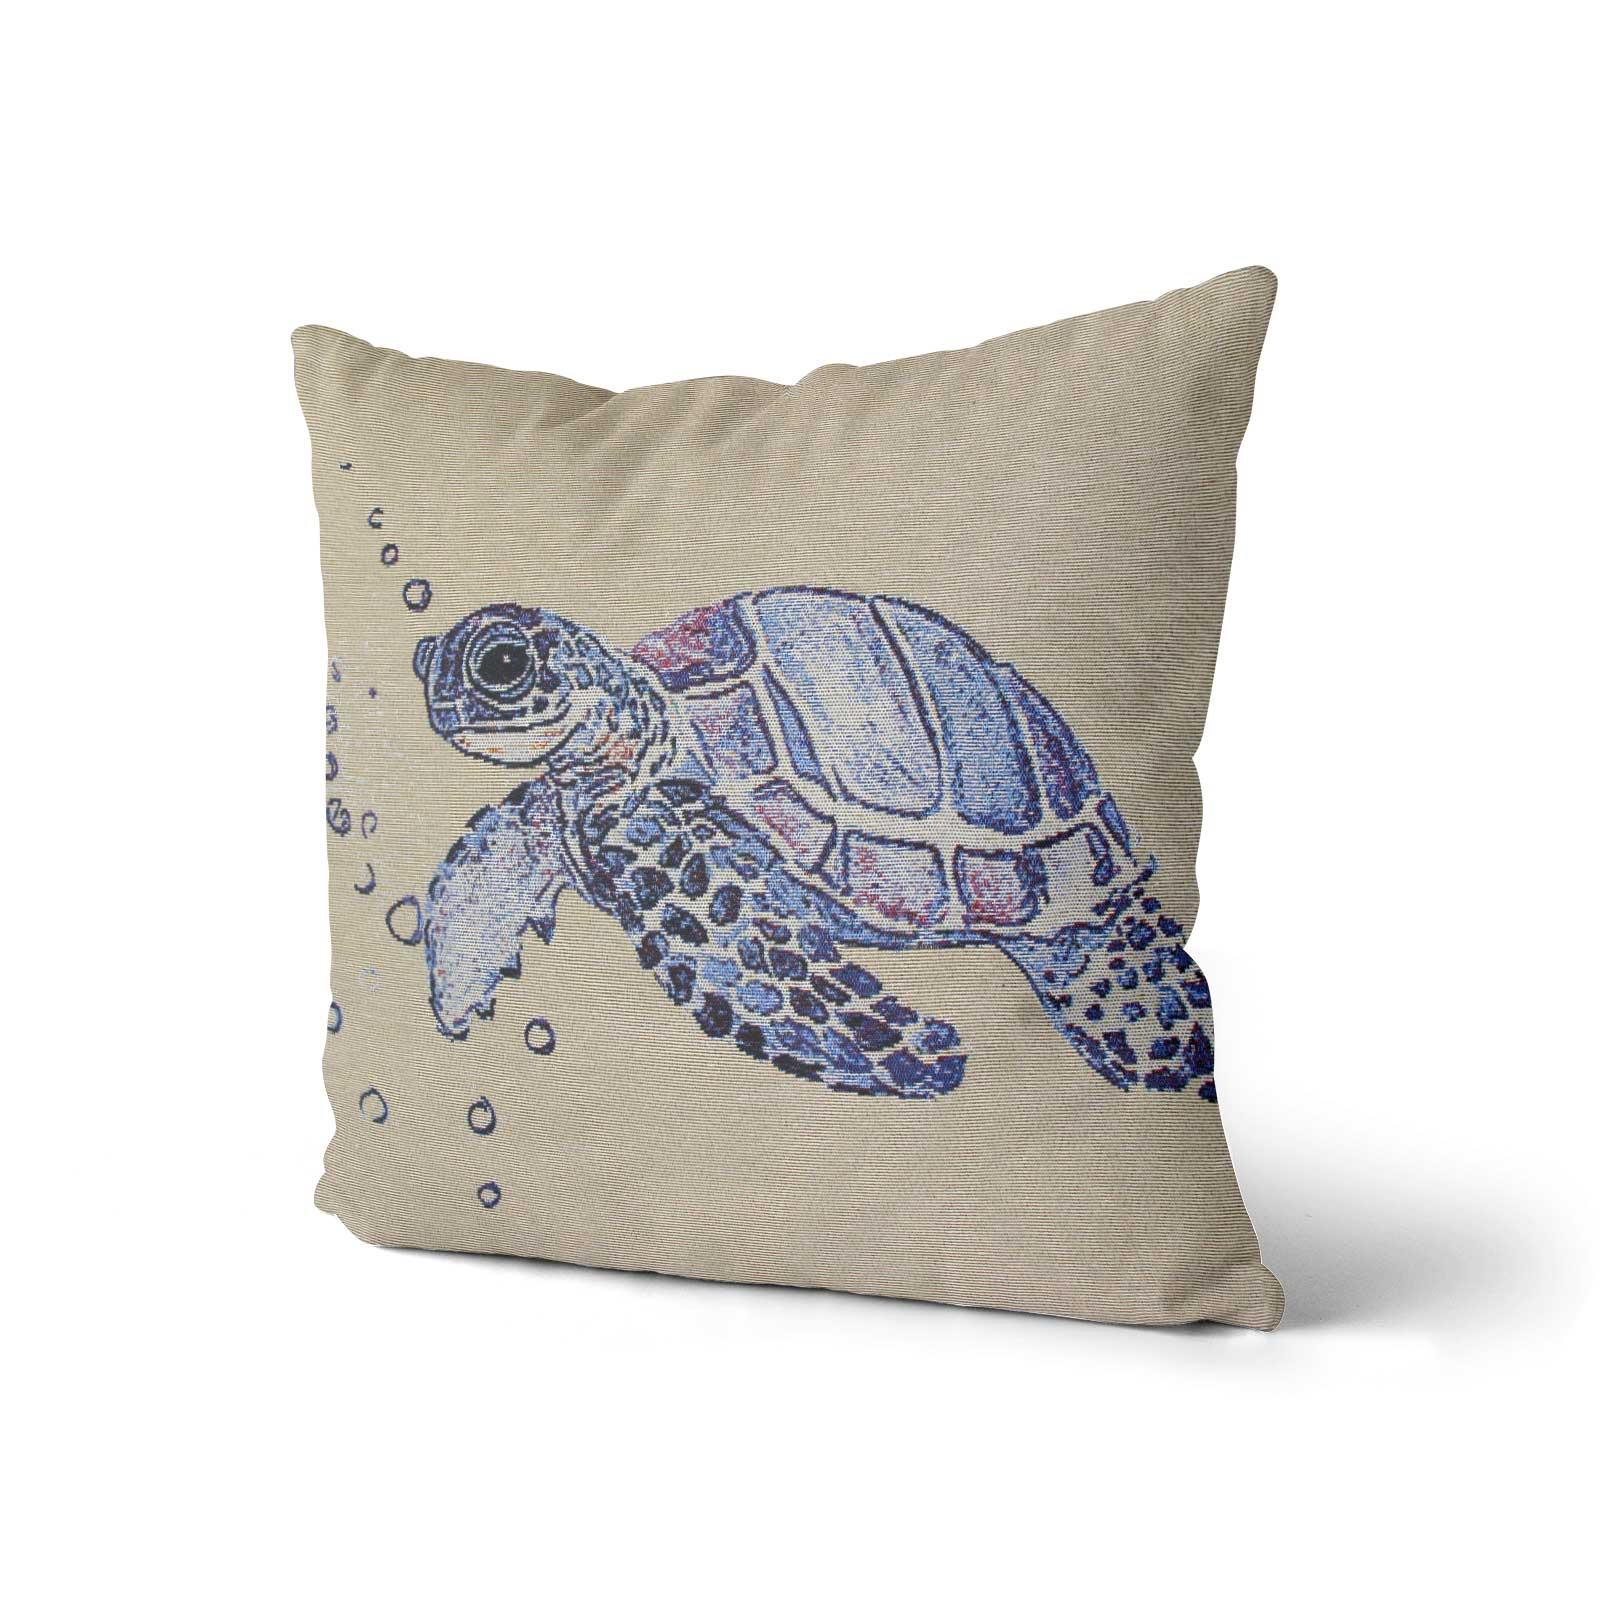 Tapestry-Cushion-Covers-Vintage-Pillow-Cover-Collection-18-034-45cm-Filled-Cushions thumbnail 221